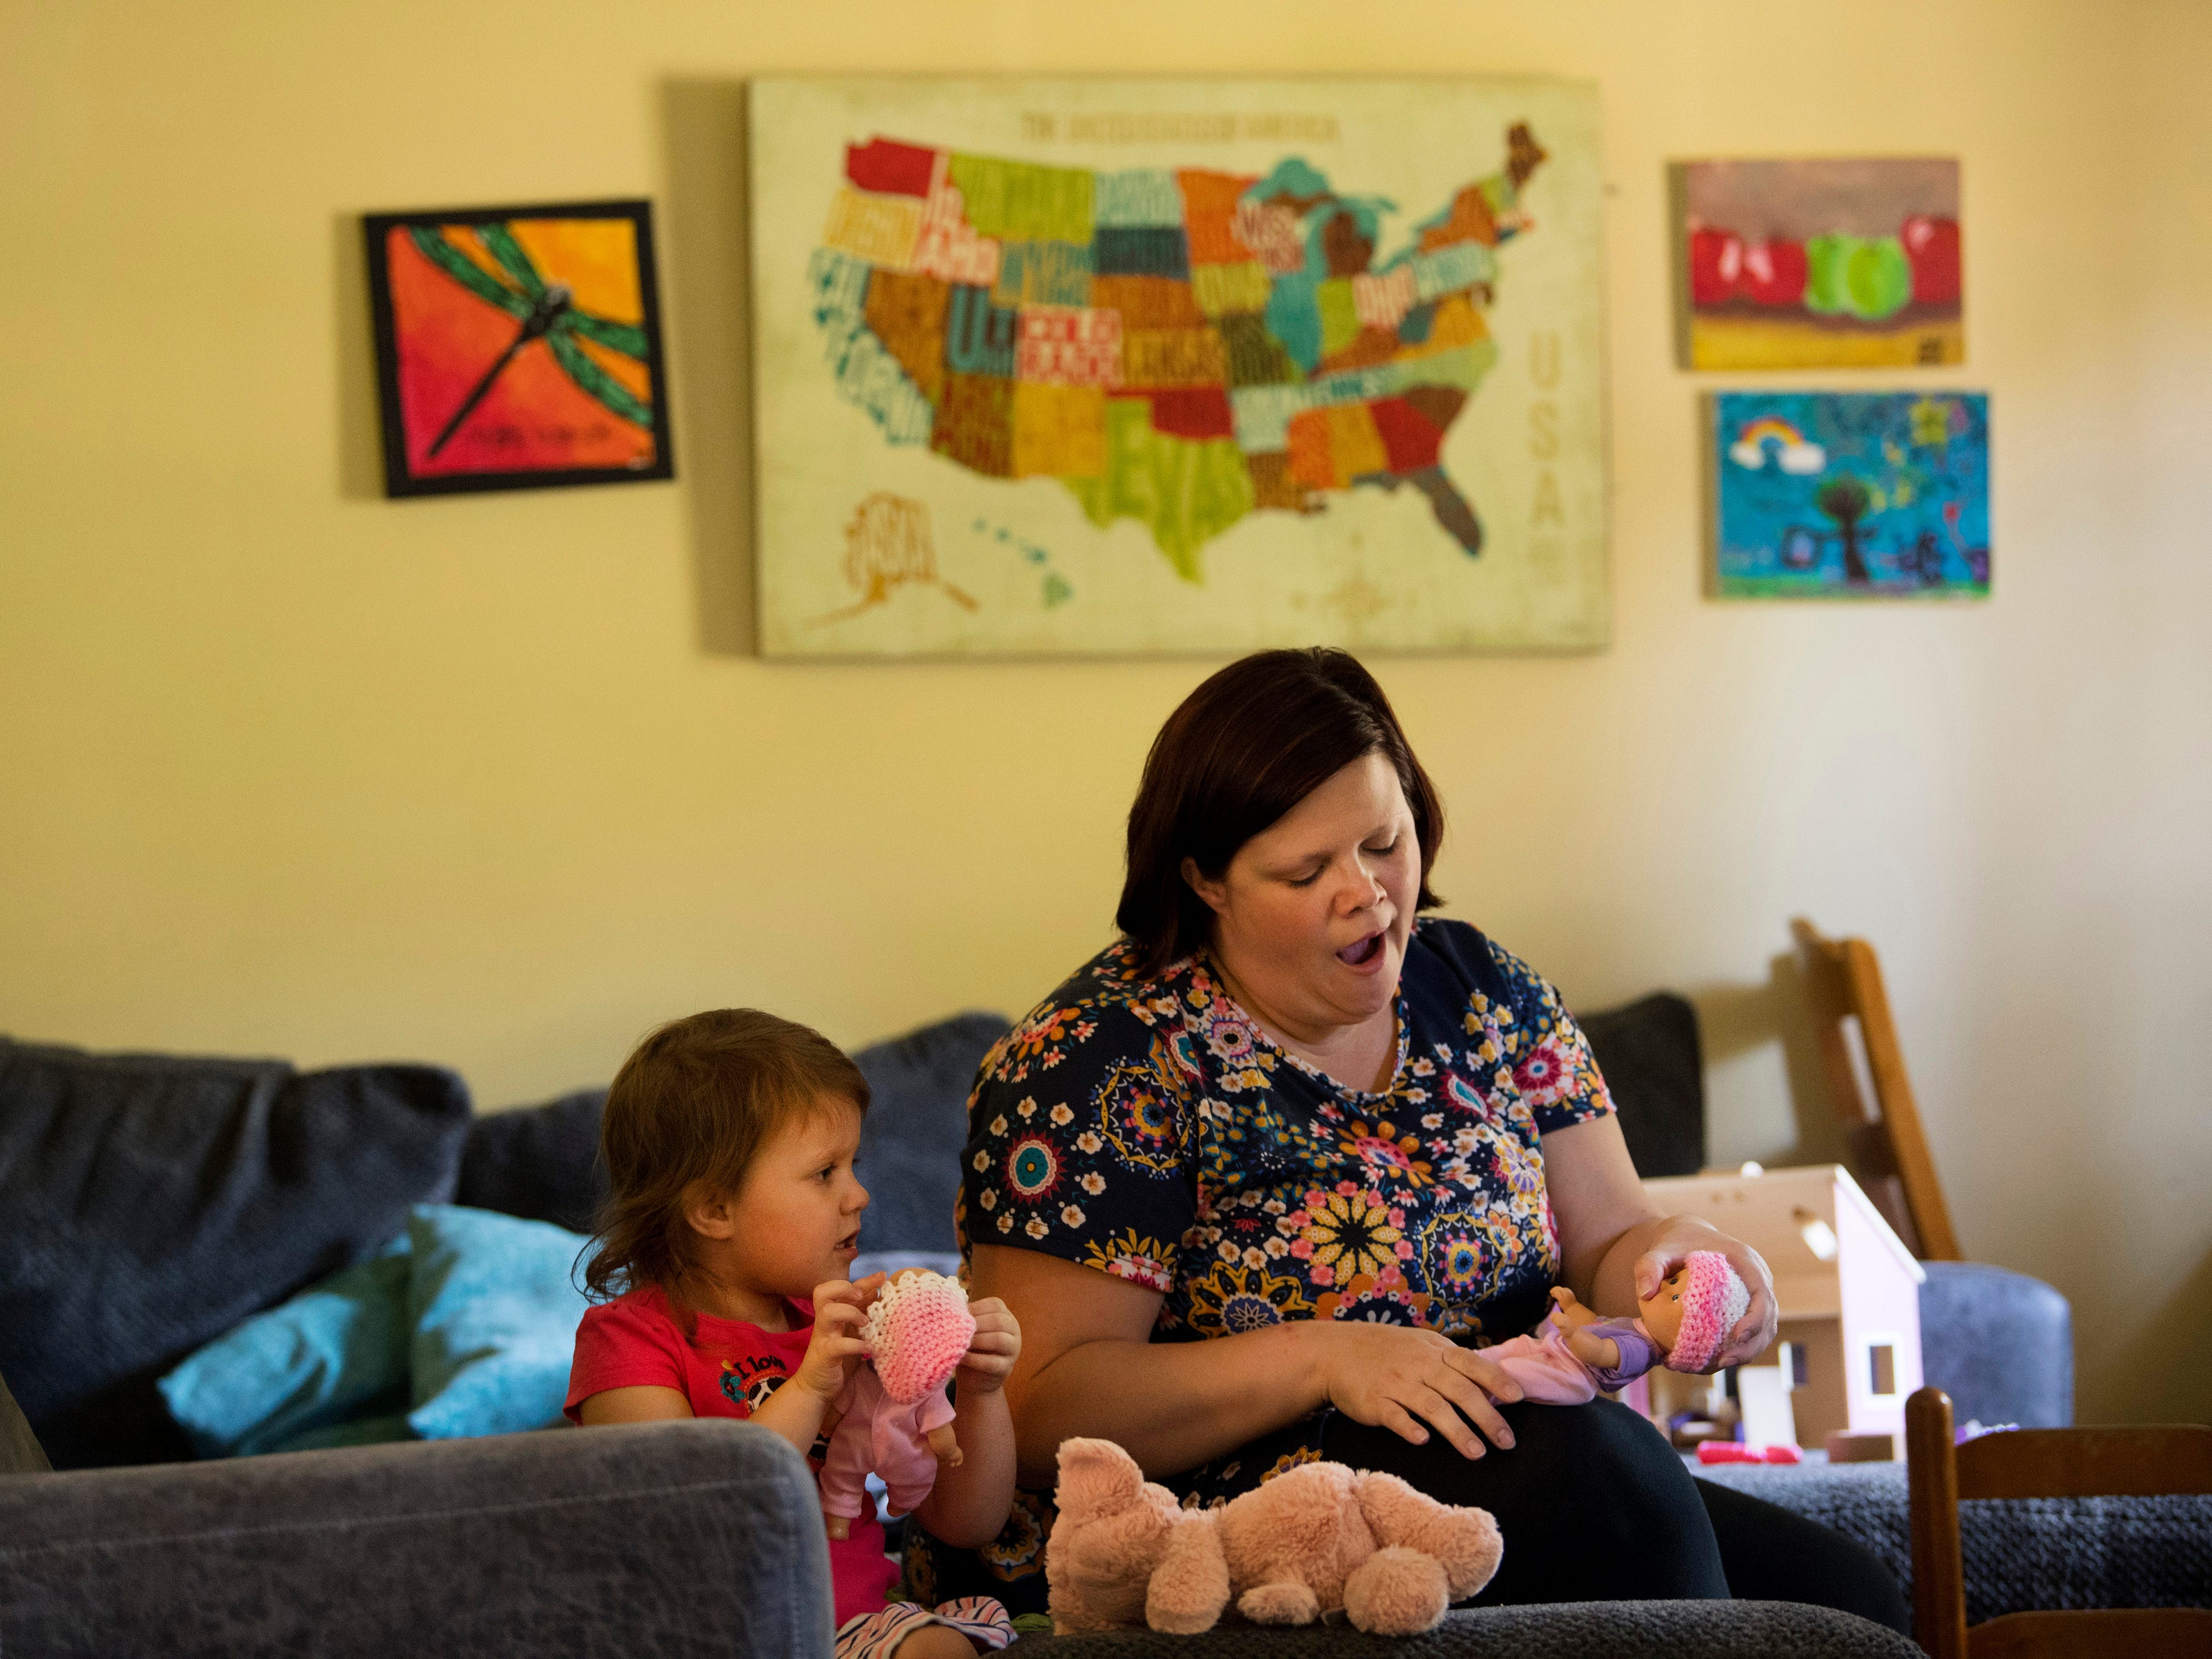 Finding a balance between spending time with her four older children, including Jacinda, 3, shown playing dolls, and visiting her twin girls in The Women's Hospital's neonatal intensive care unit, proved exhausting for Heather Harper of Newburgh, Ind. The twins spent 105 days in the NICU and another eight days at Riley's Children's Hospital before finally getting to come home on Nov. 20, 2018. They were nearly four months old.